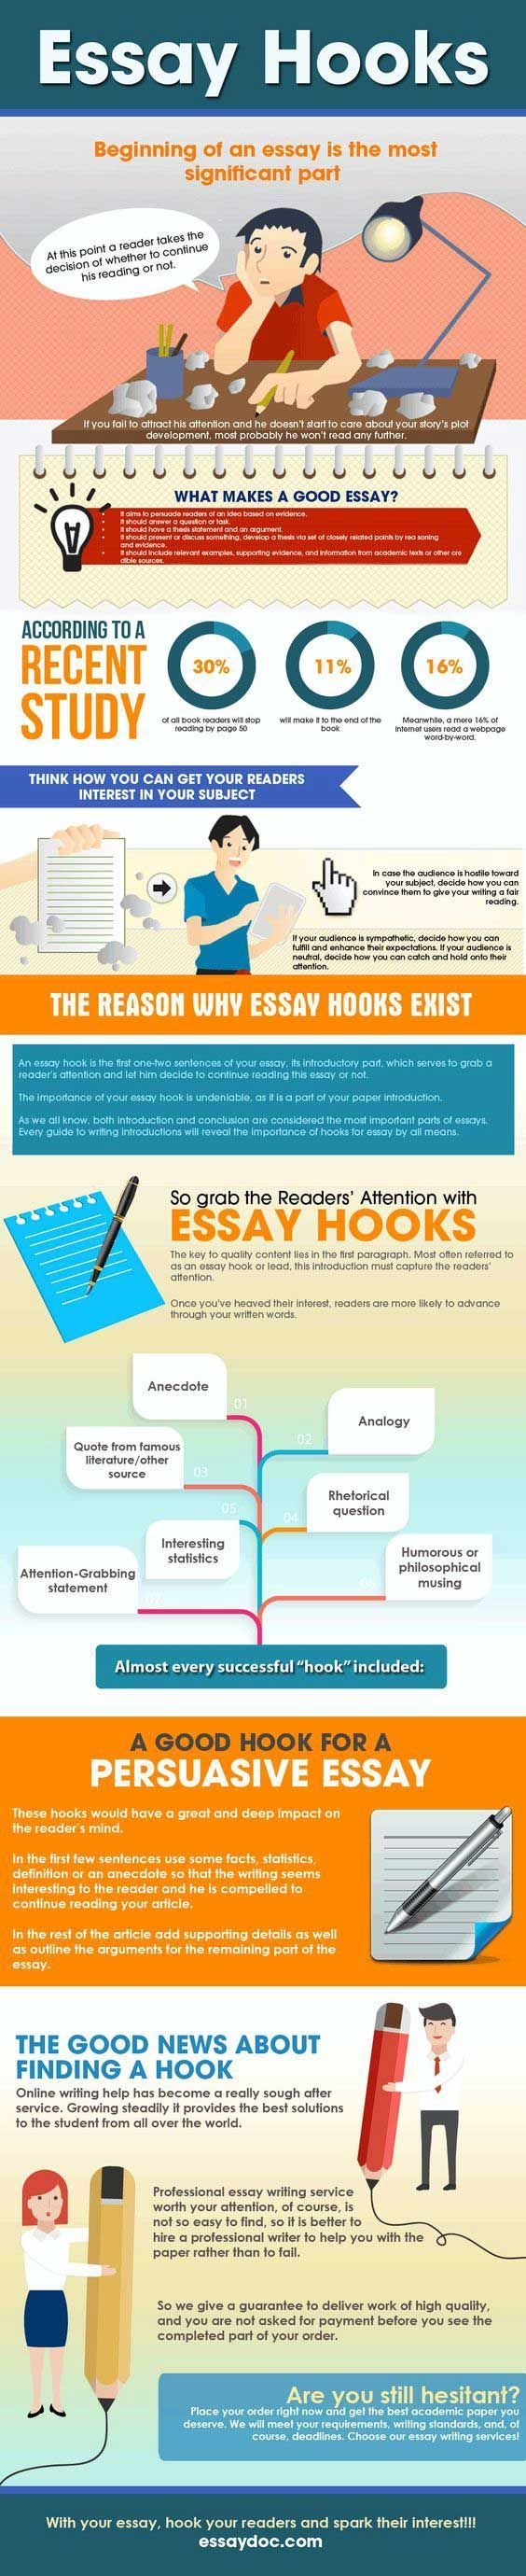 best ideas about write my paper law of 18 infographics that will teach you how to write an a research paper or essay